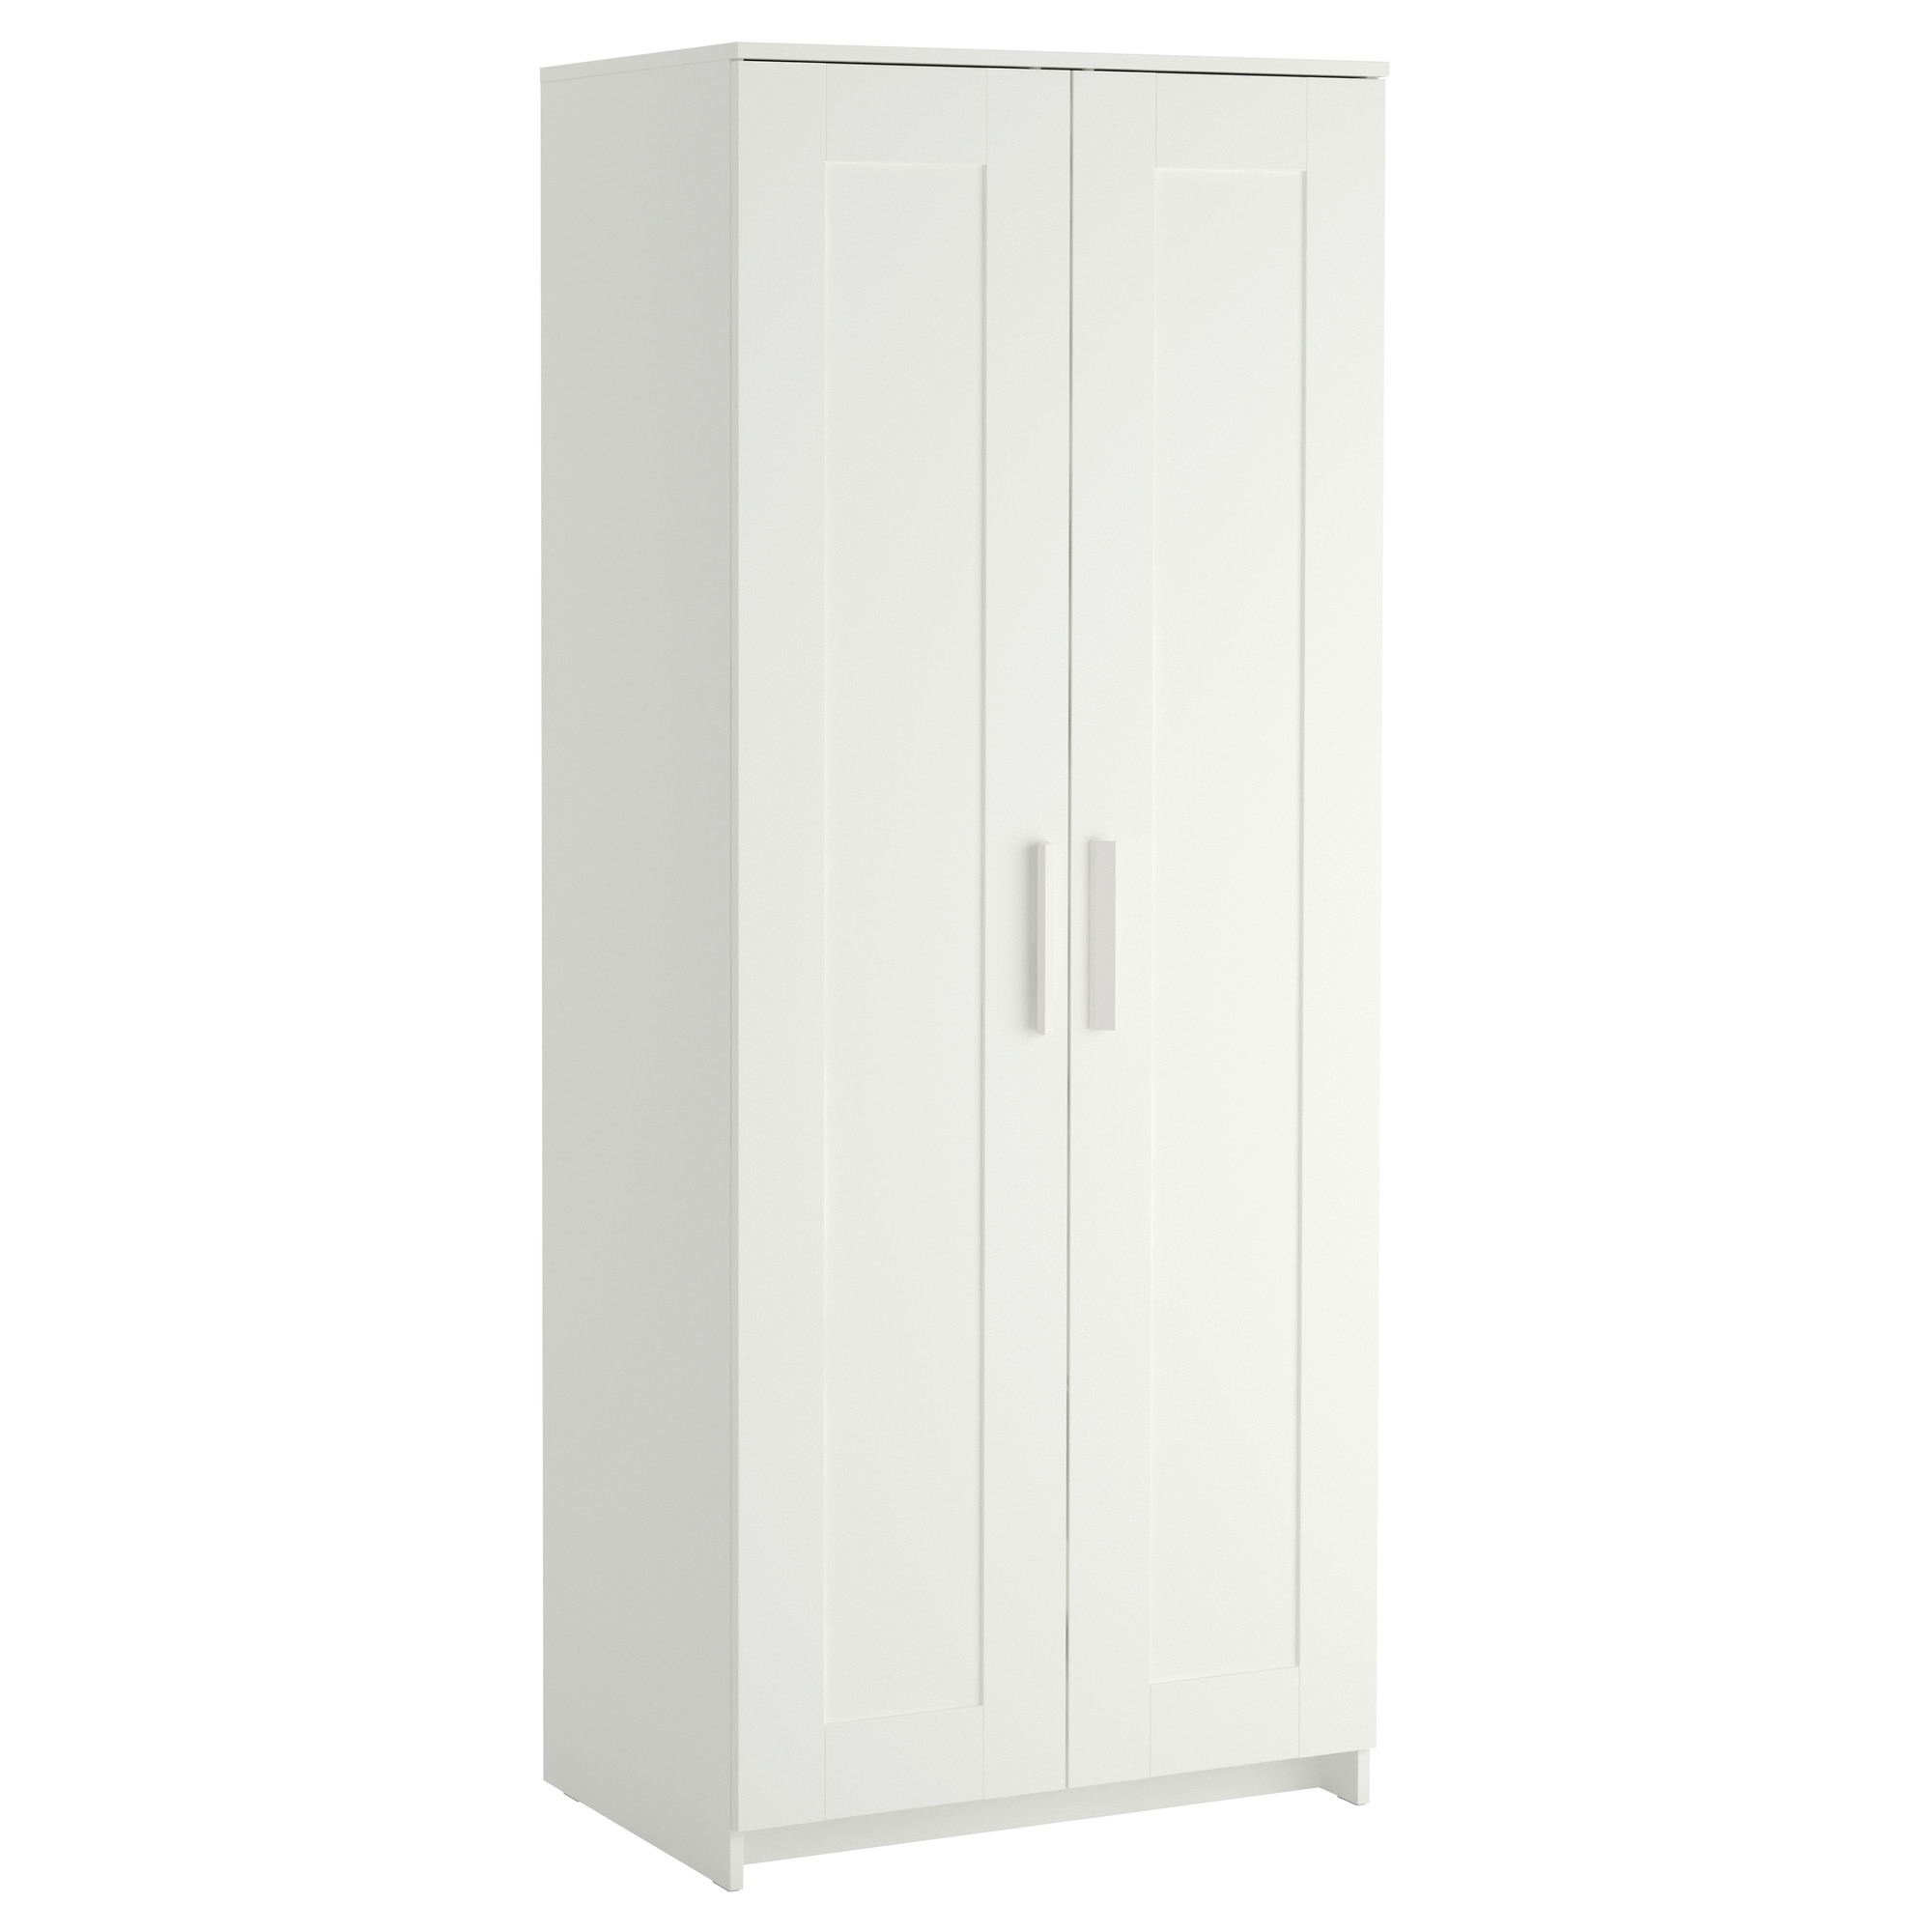 Trendy Brimnes Wardrobe With 2 Doors White 78X190 Cm – Ikea With Regard To Cheap White Wardrobes (View 14 of 15)